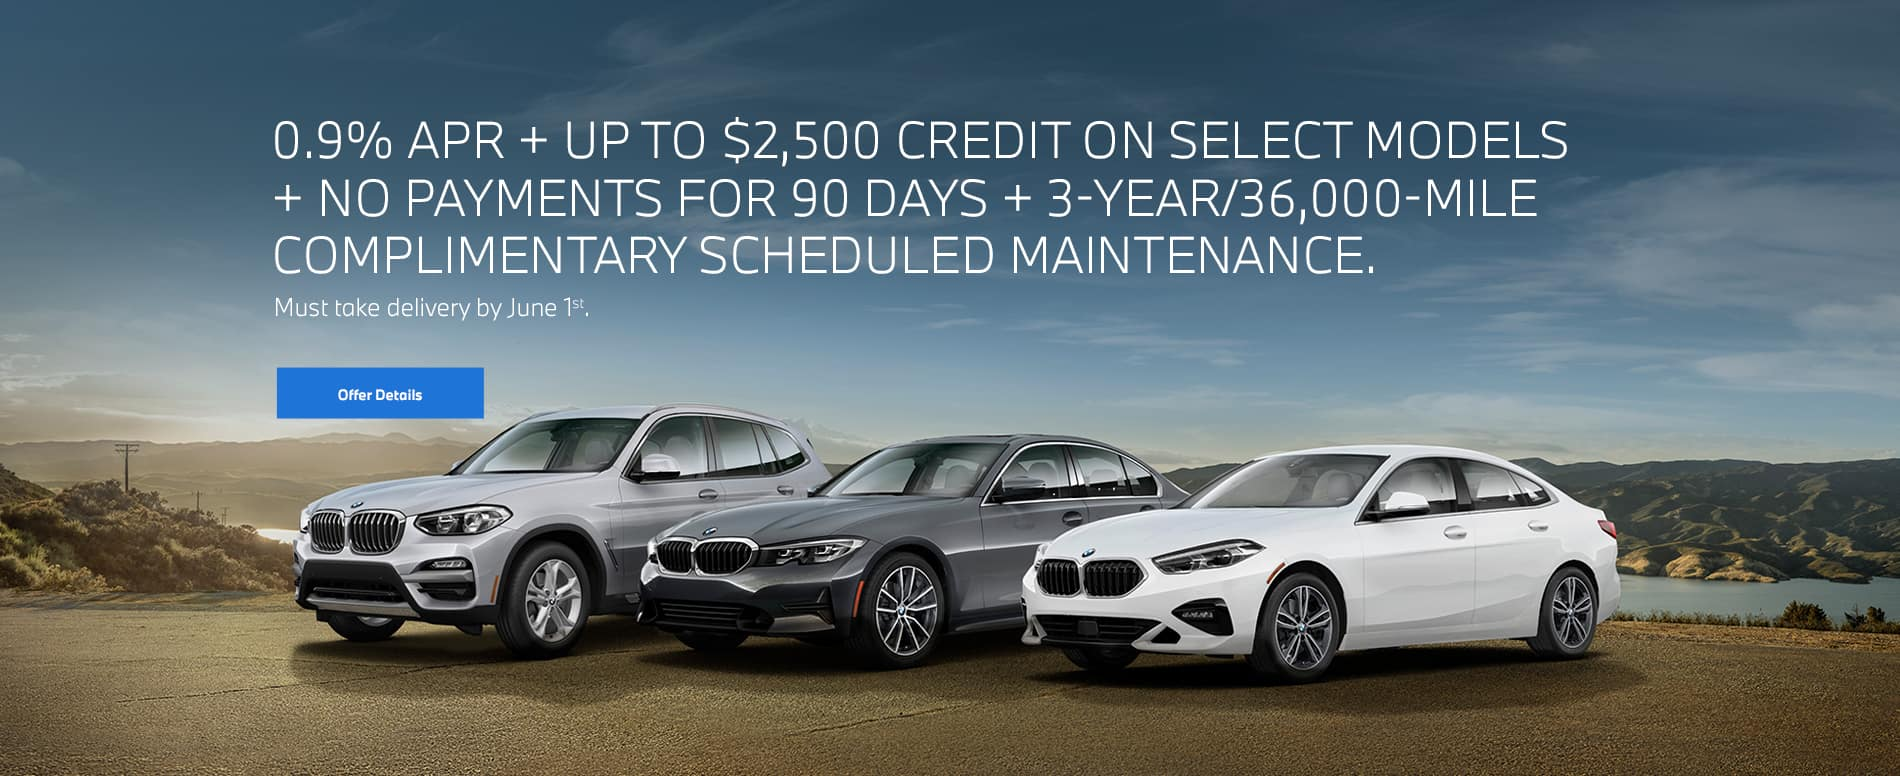 BMW Quad offer May 2020